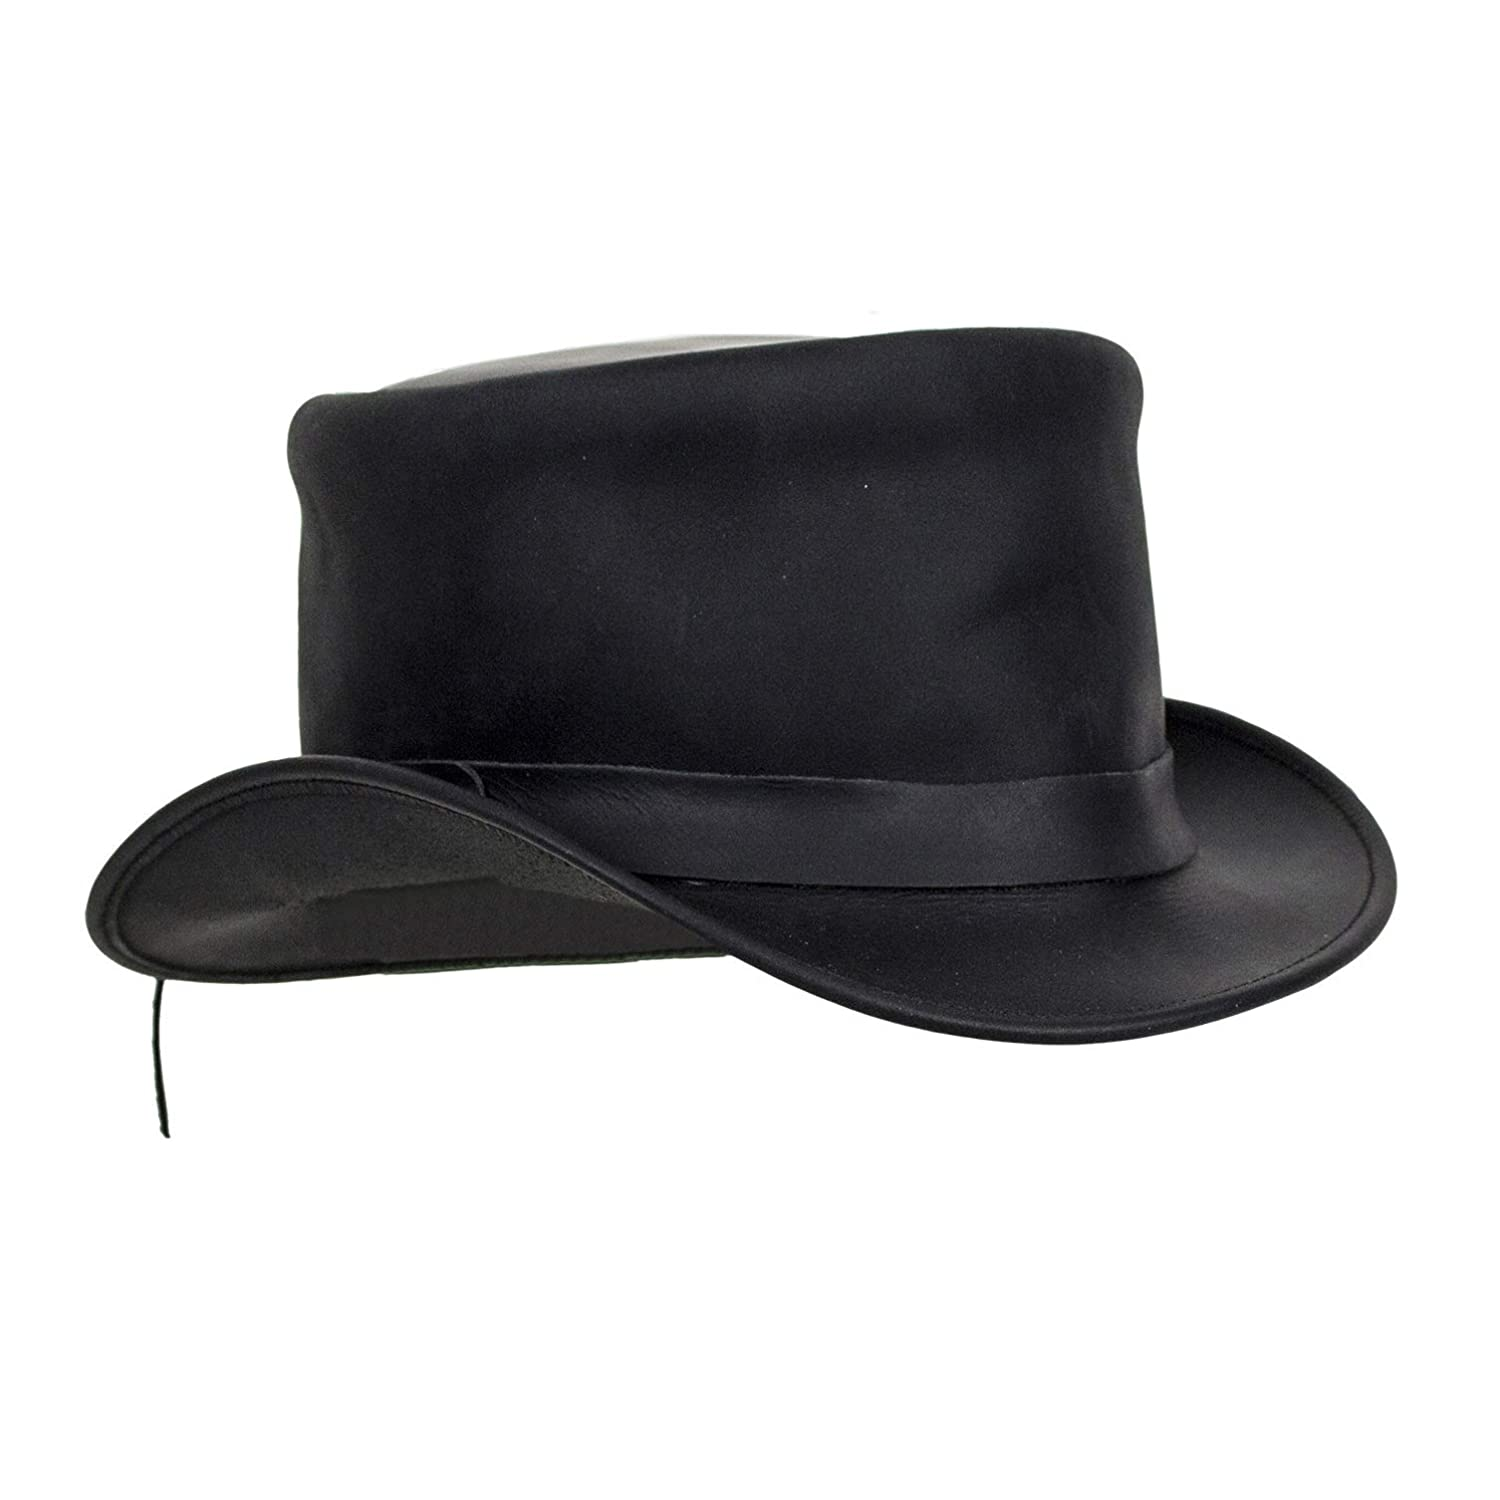 ab5622e6af3c65 Steampunk Hats | Top Hats | Bowler Black Leather Deadman Top Hat $69.00 AT  vintagedancer.